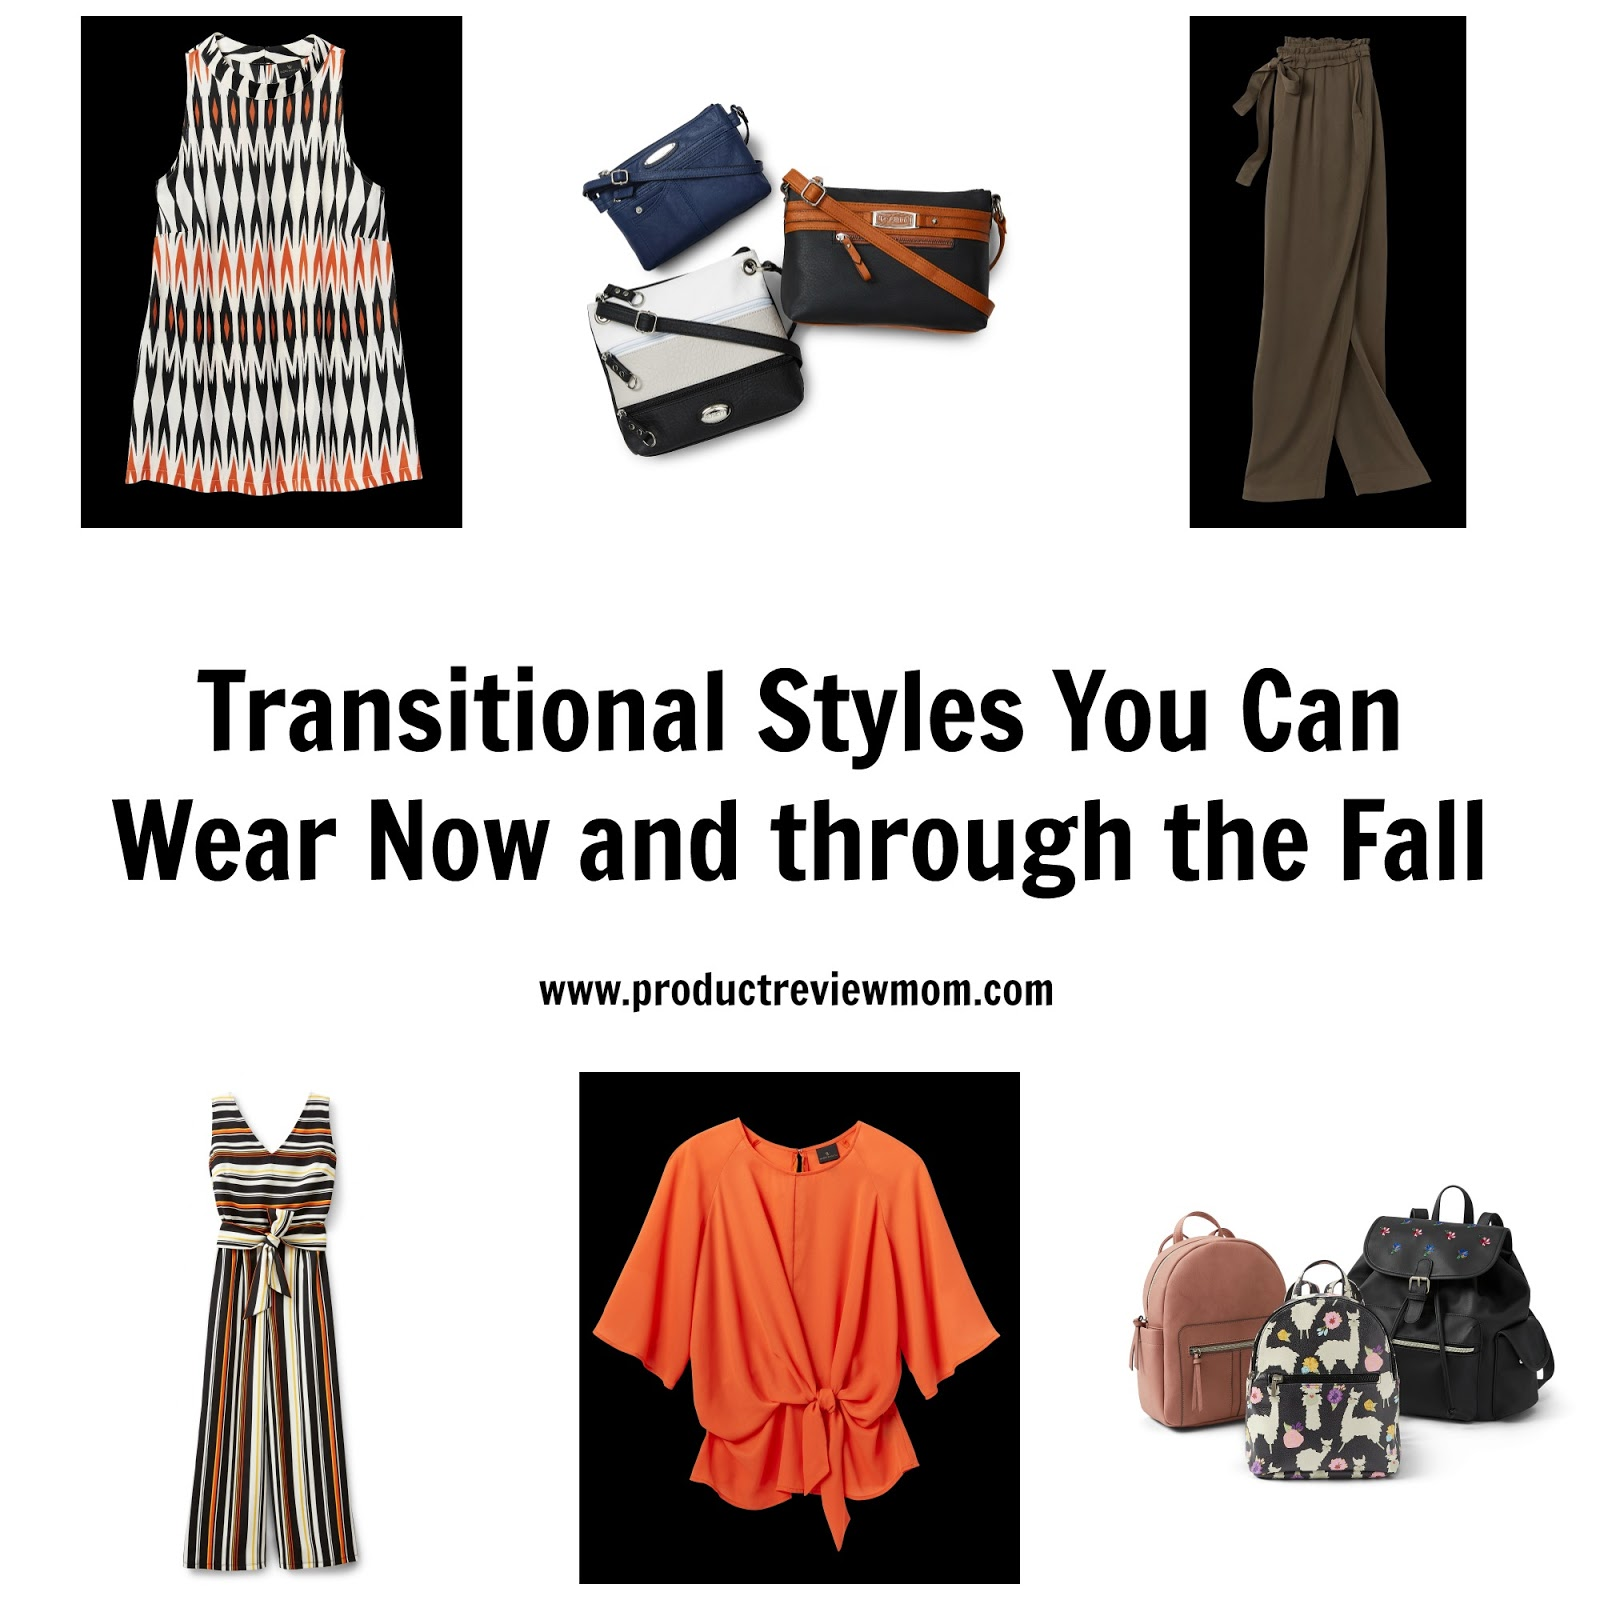 Transitional Styles You Can Wear Now and through the Fall